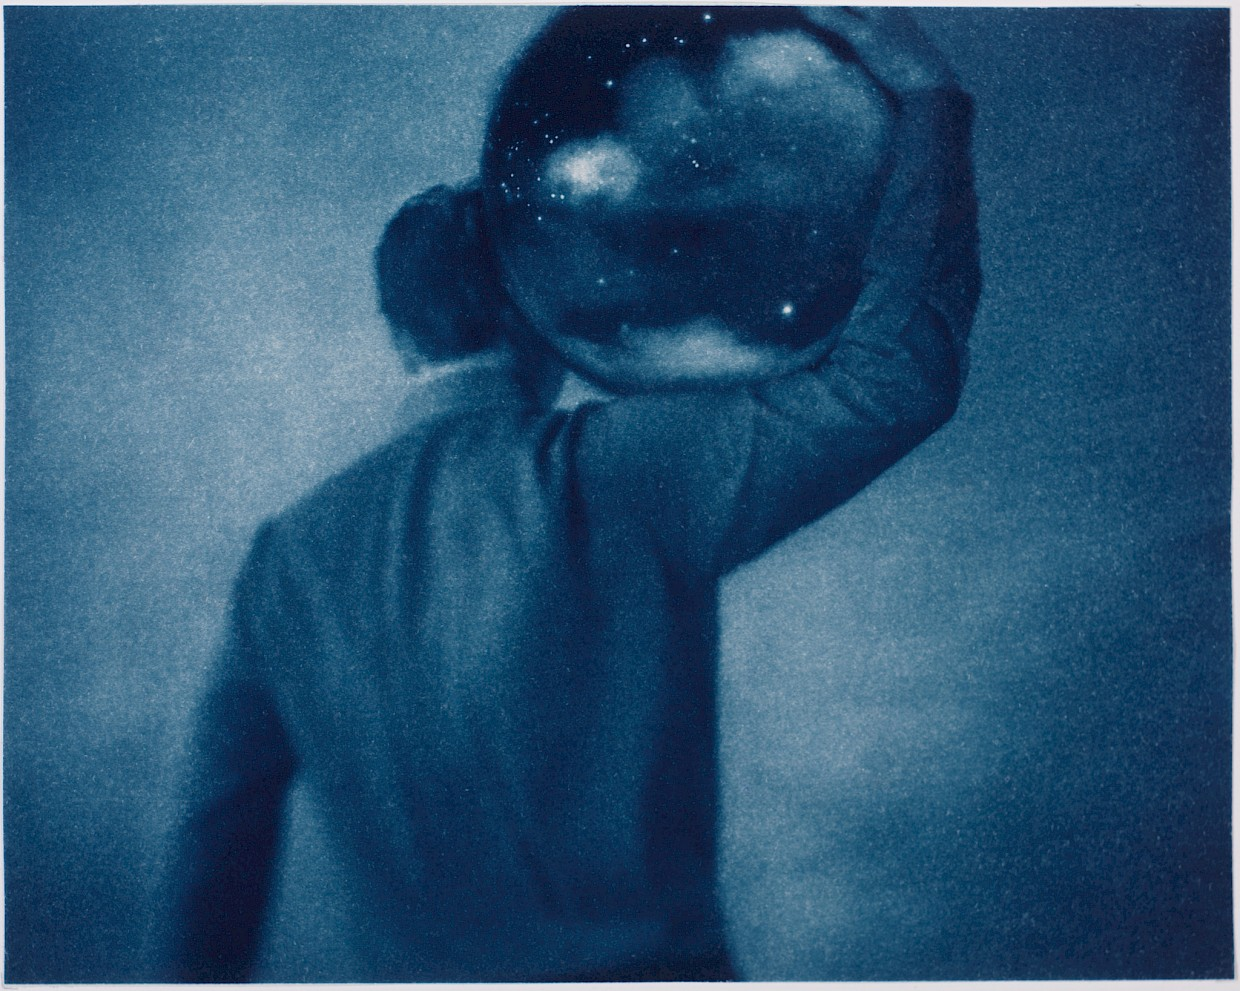 Man holding a globe containing the night sky and stars on his shoulders metaphor for man's search for meaning & purpose in life